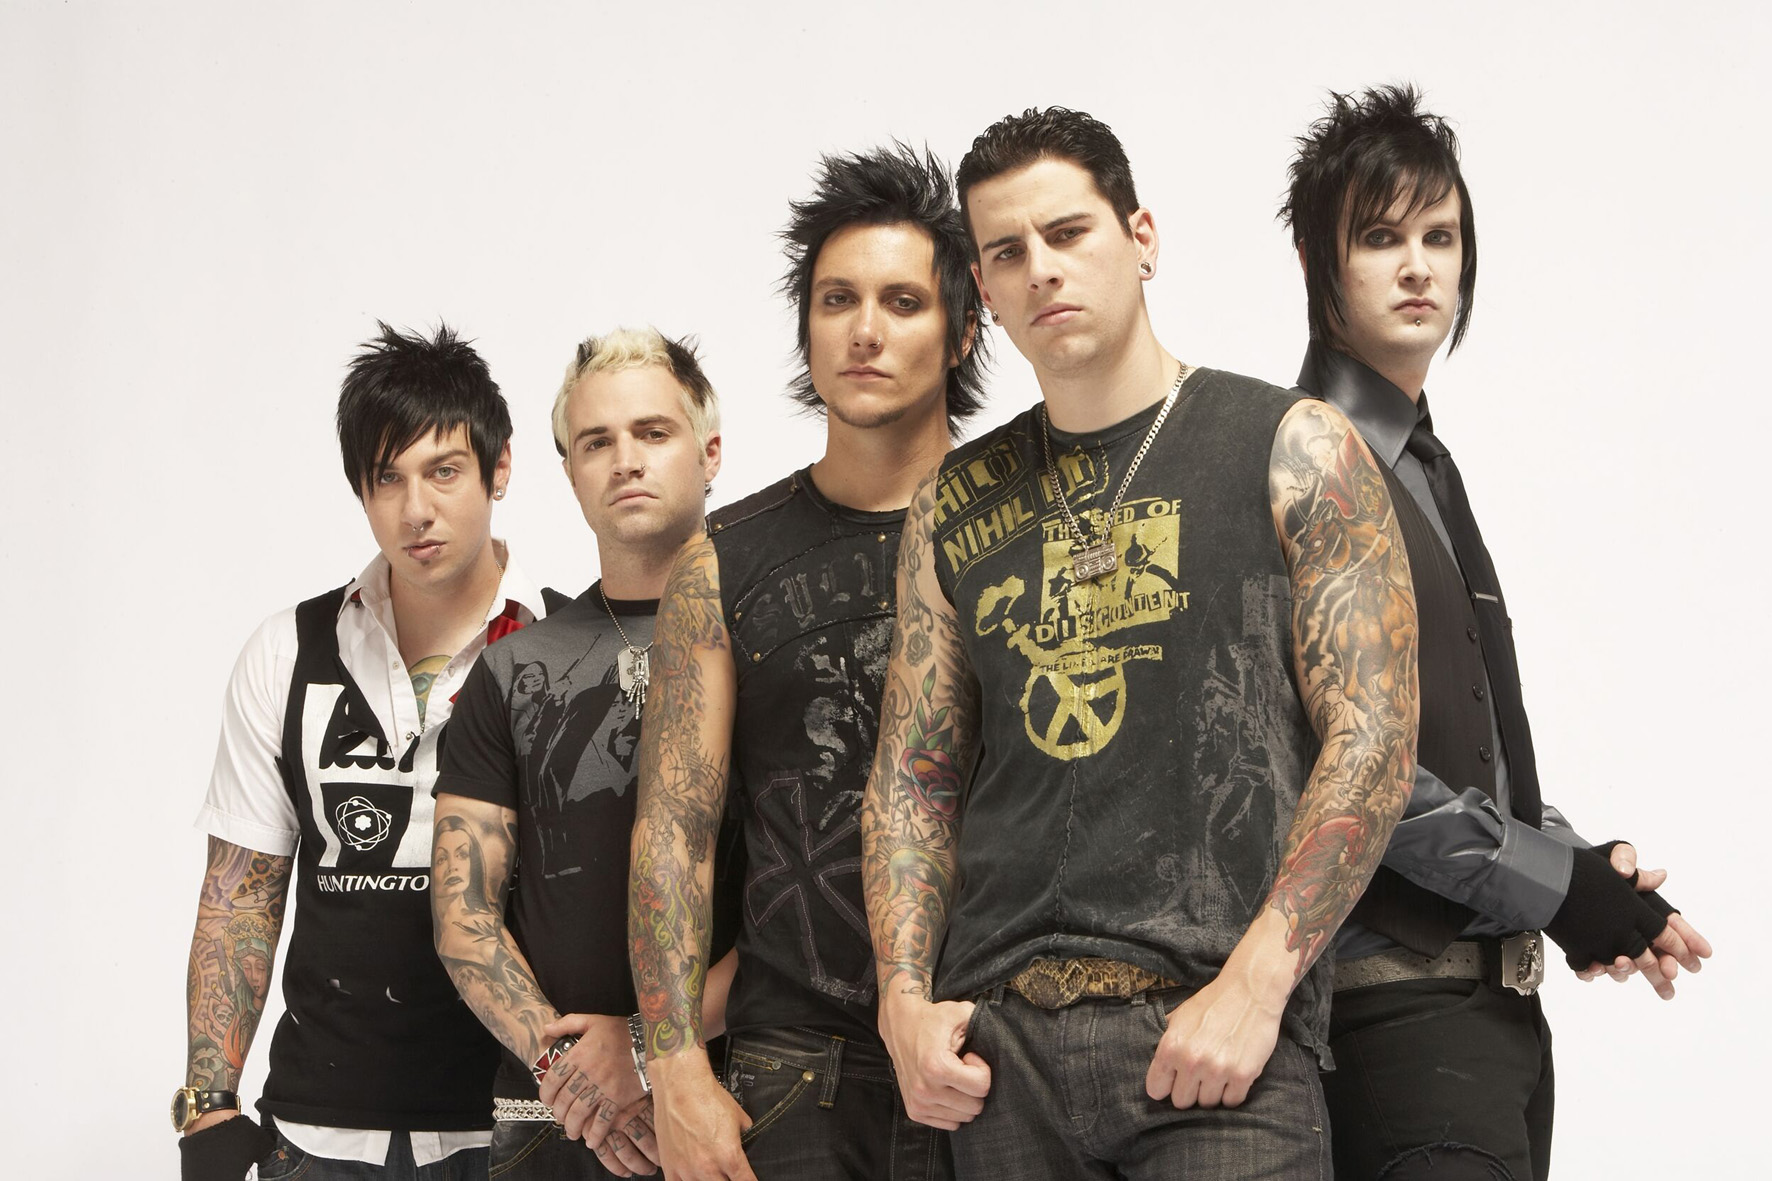 avenged sevenfoldu weird wud compare